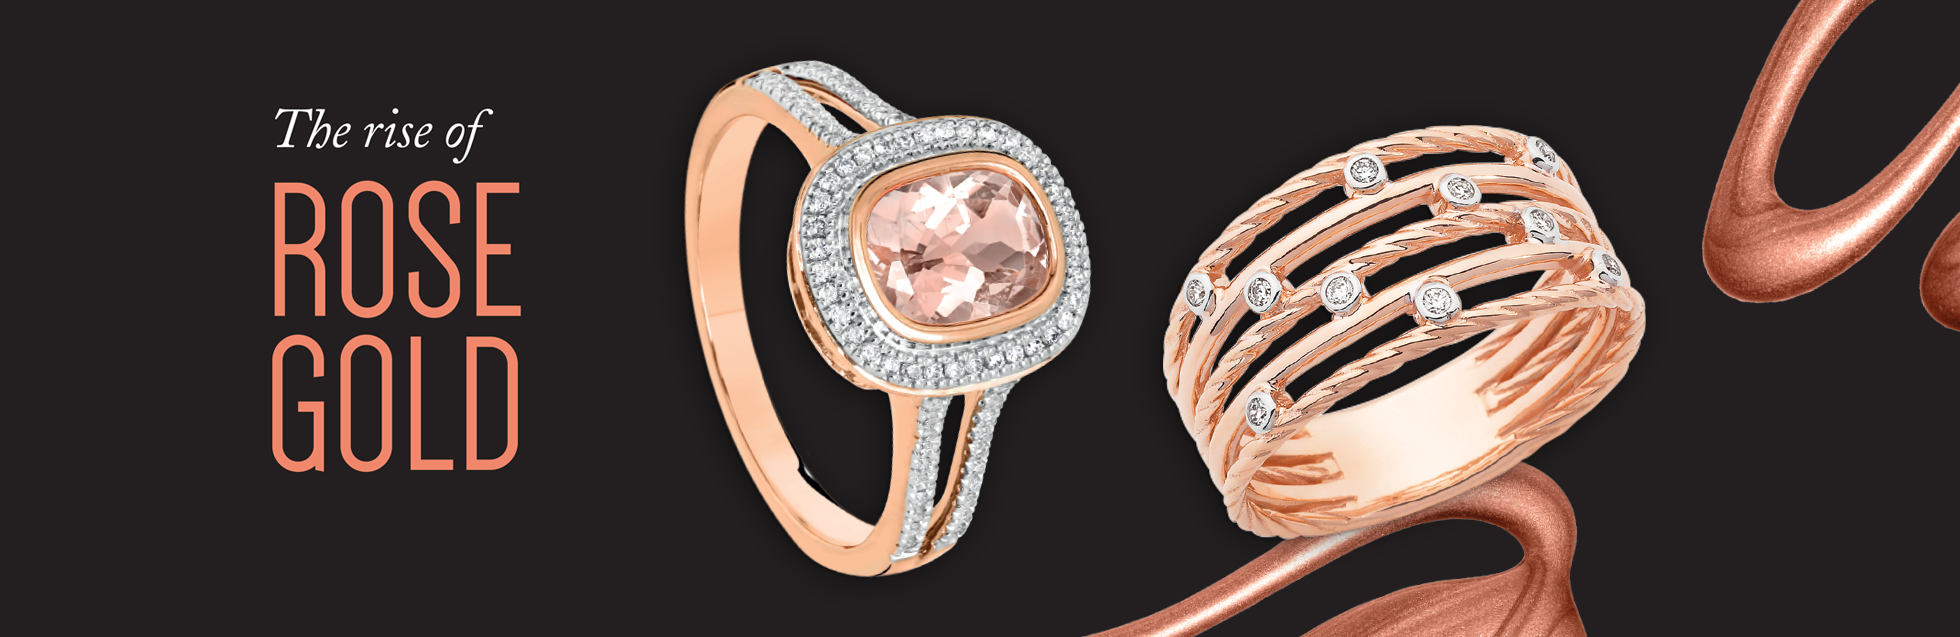 rose-gold-jewellery-at-stephens-jewellers